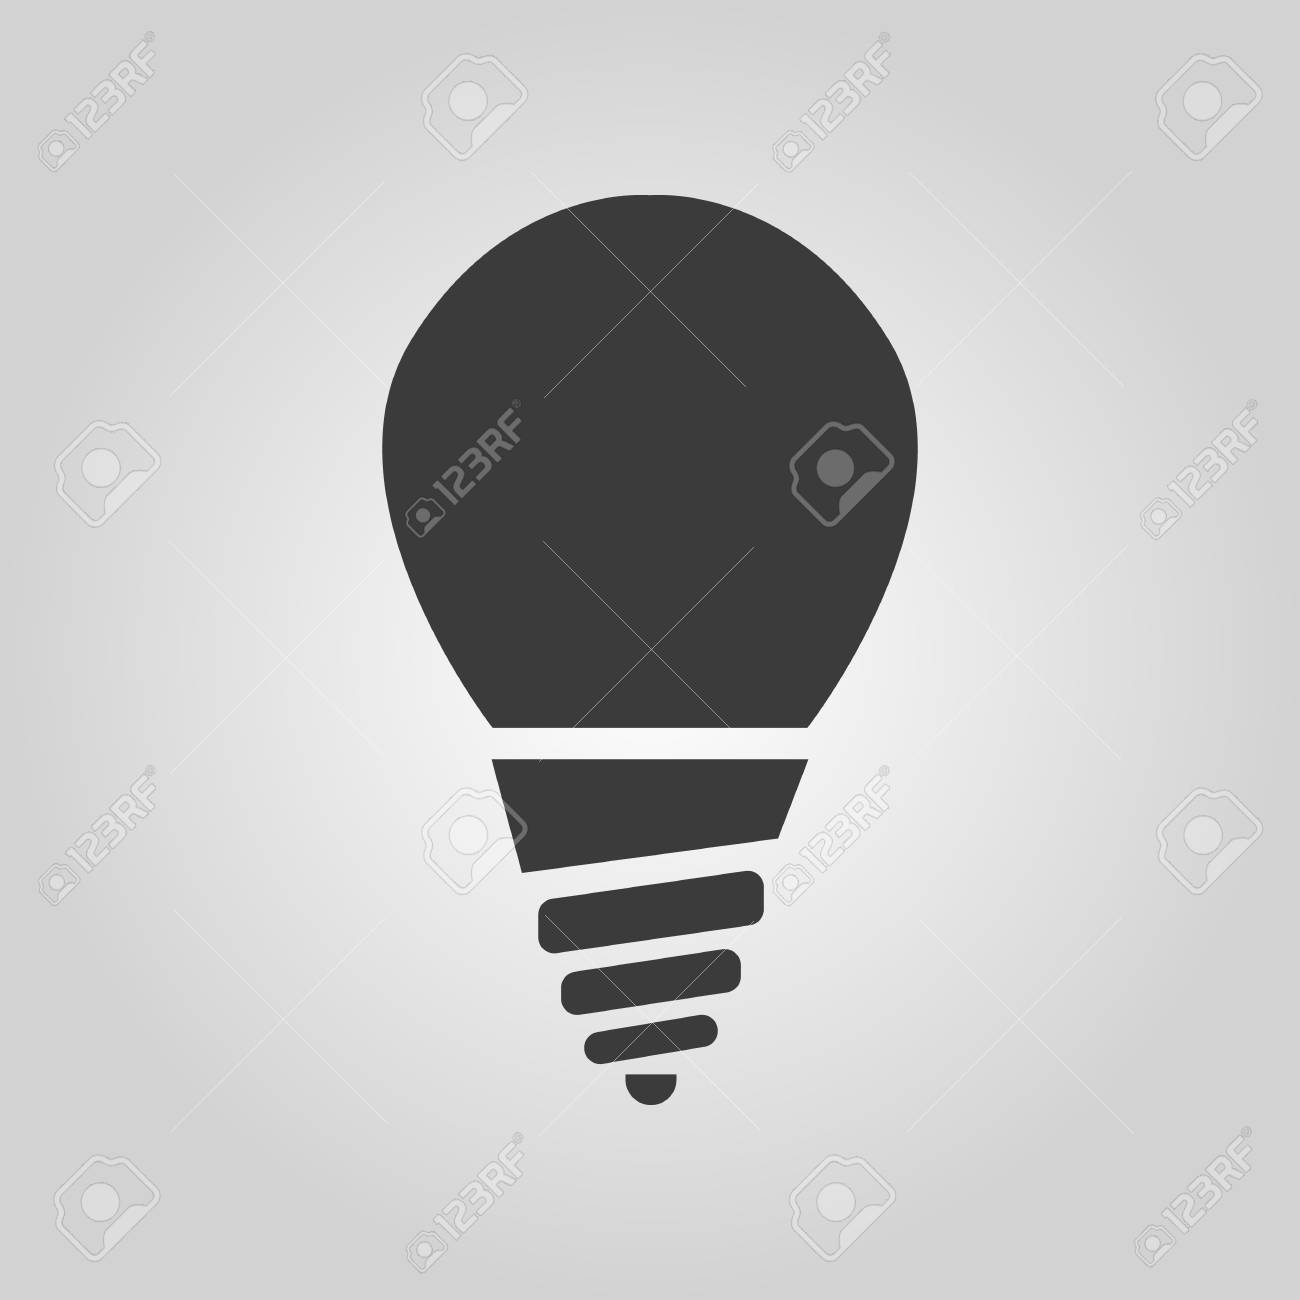 The Incandescent Lamp Icon Lamp And Bulb Lightbulb Filament